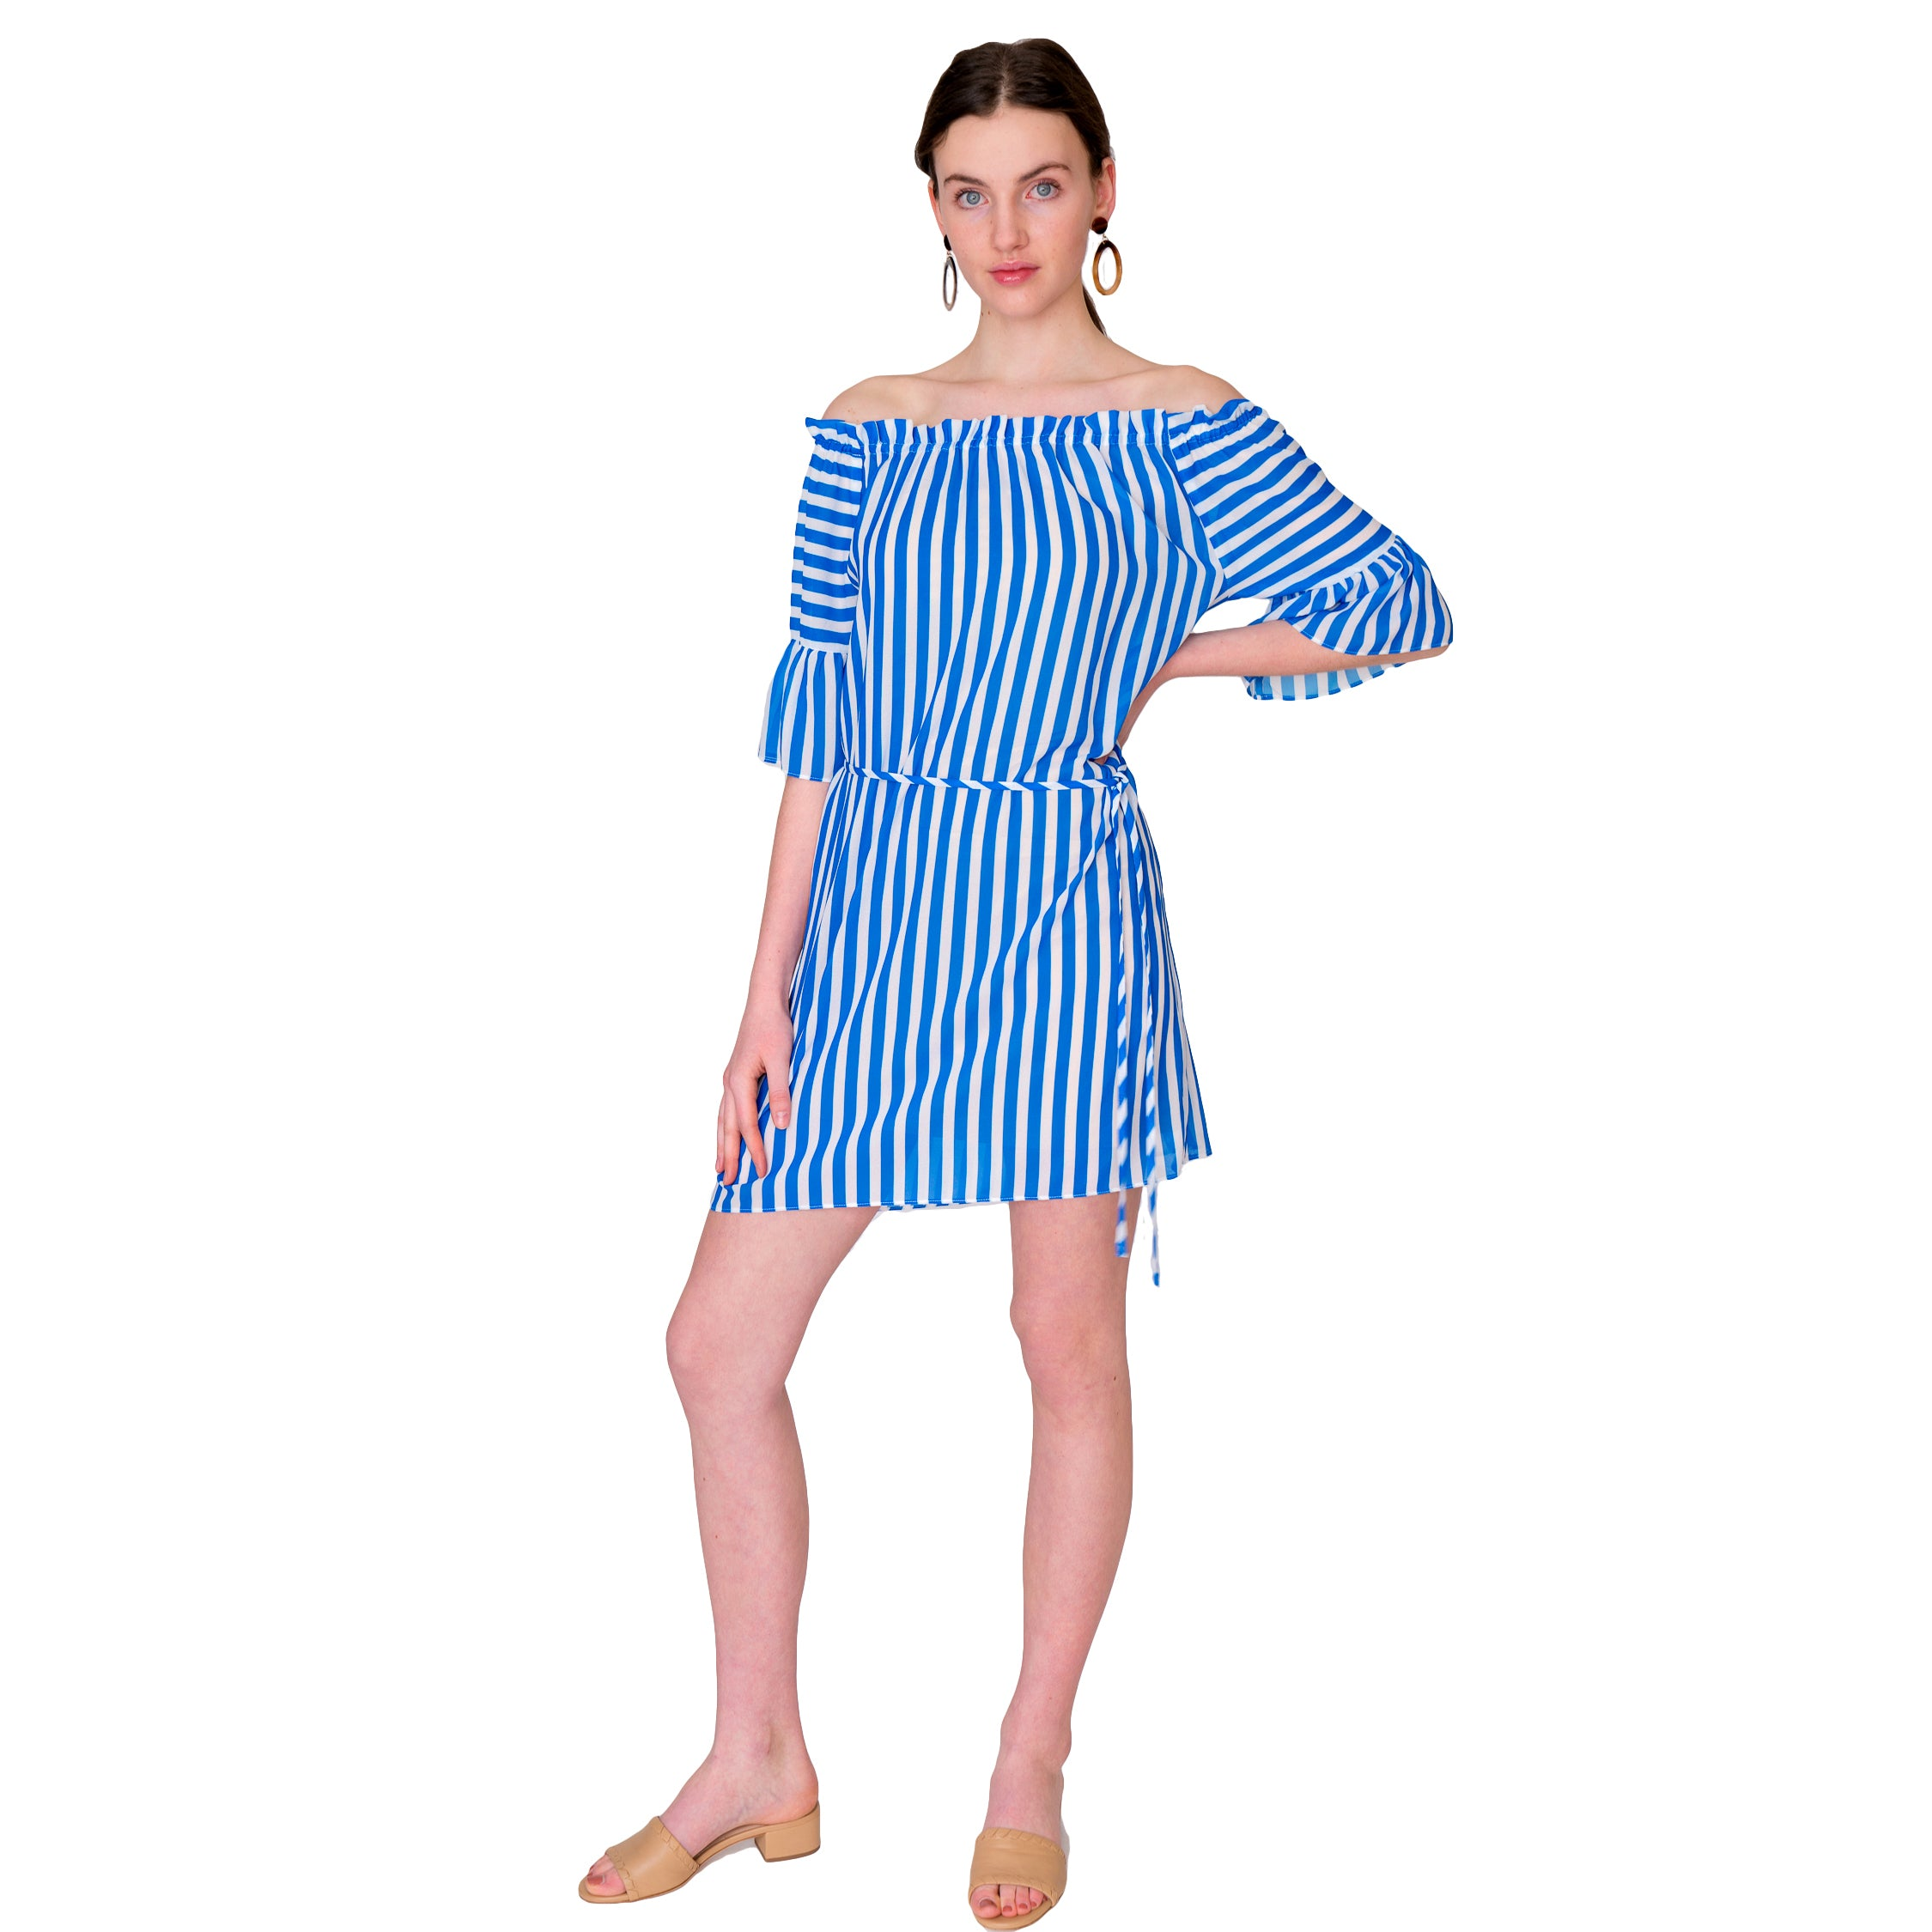 Mae On Off Shoulder Ruffle Sleeve Dress in Blue Stripe - Elizabeth Ackerman New York